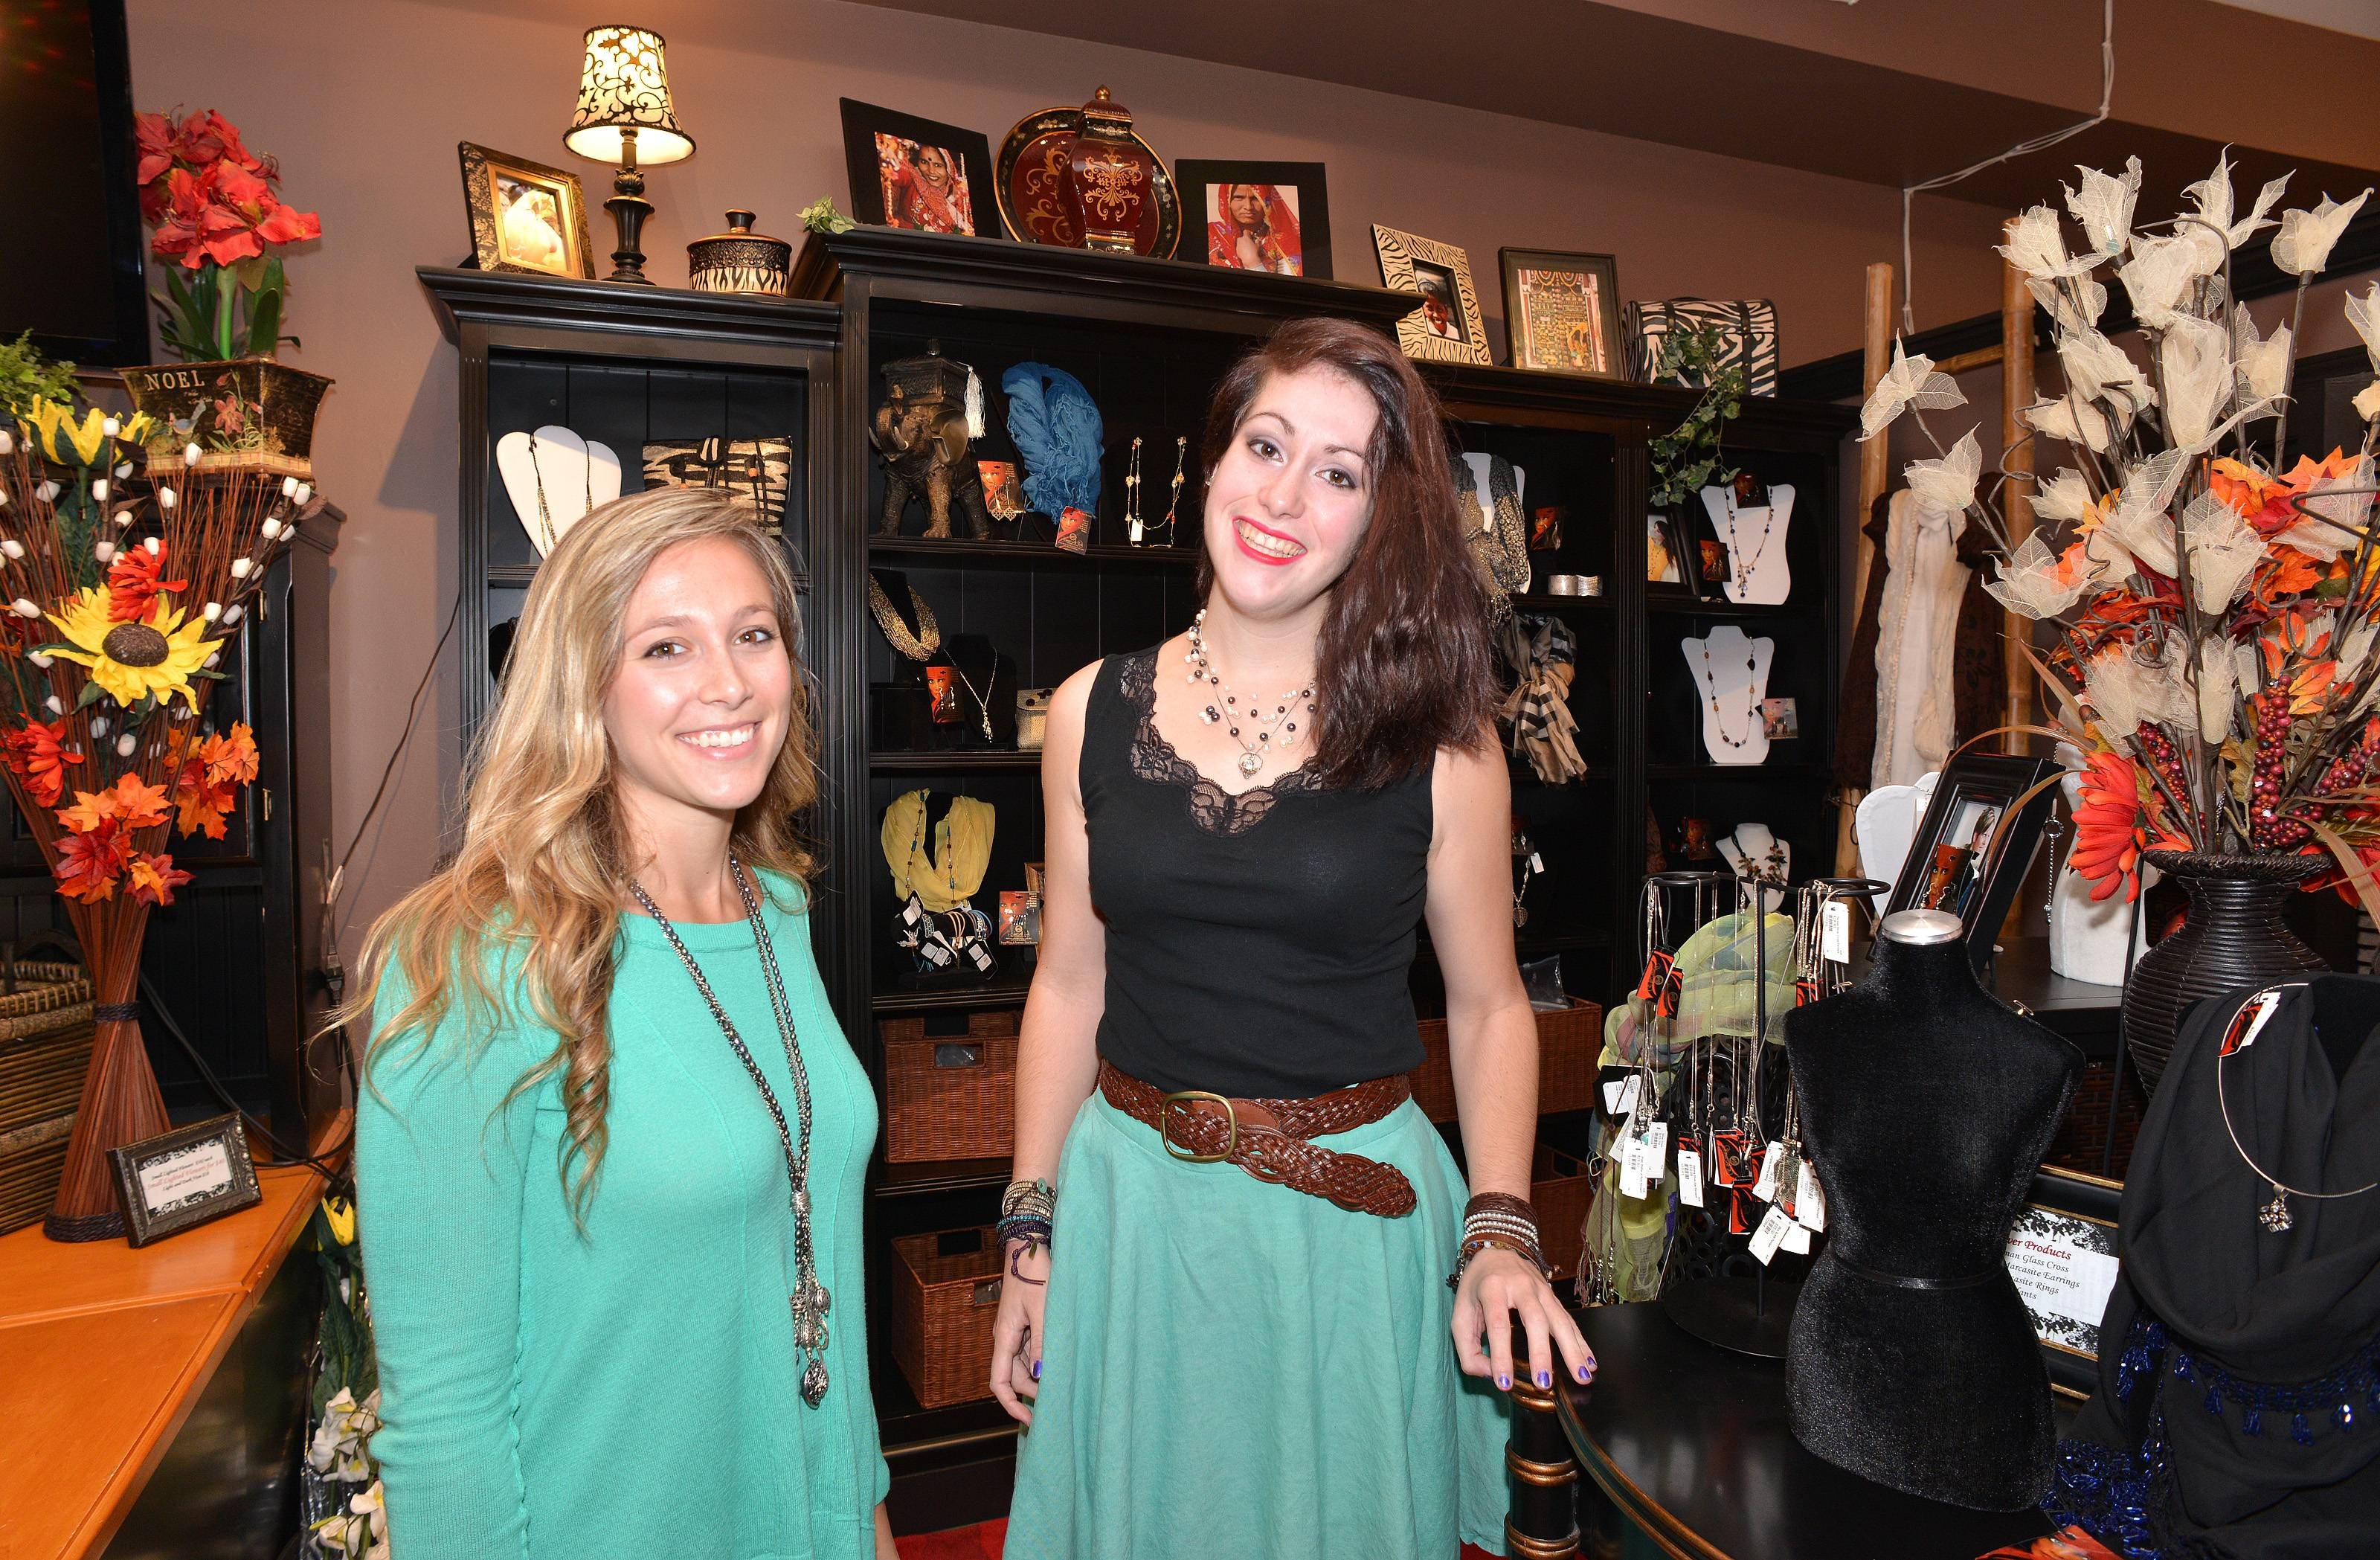 Jessie Dattalo of Wheaton, left, and Meggie Zayas of Lombard are shown in the WAR Chest Boutique in Naperville. Everything in the store is made or sourced from victims of human trafficking or those at risk for human trafficking around the world.